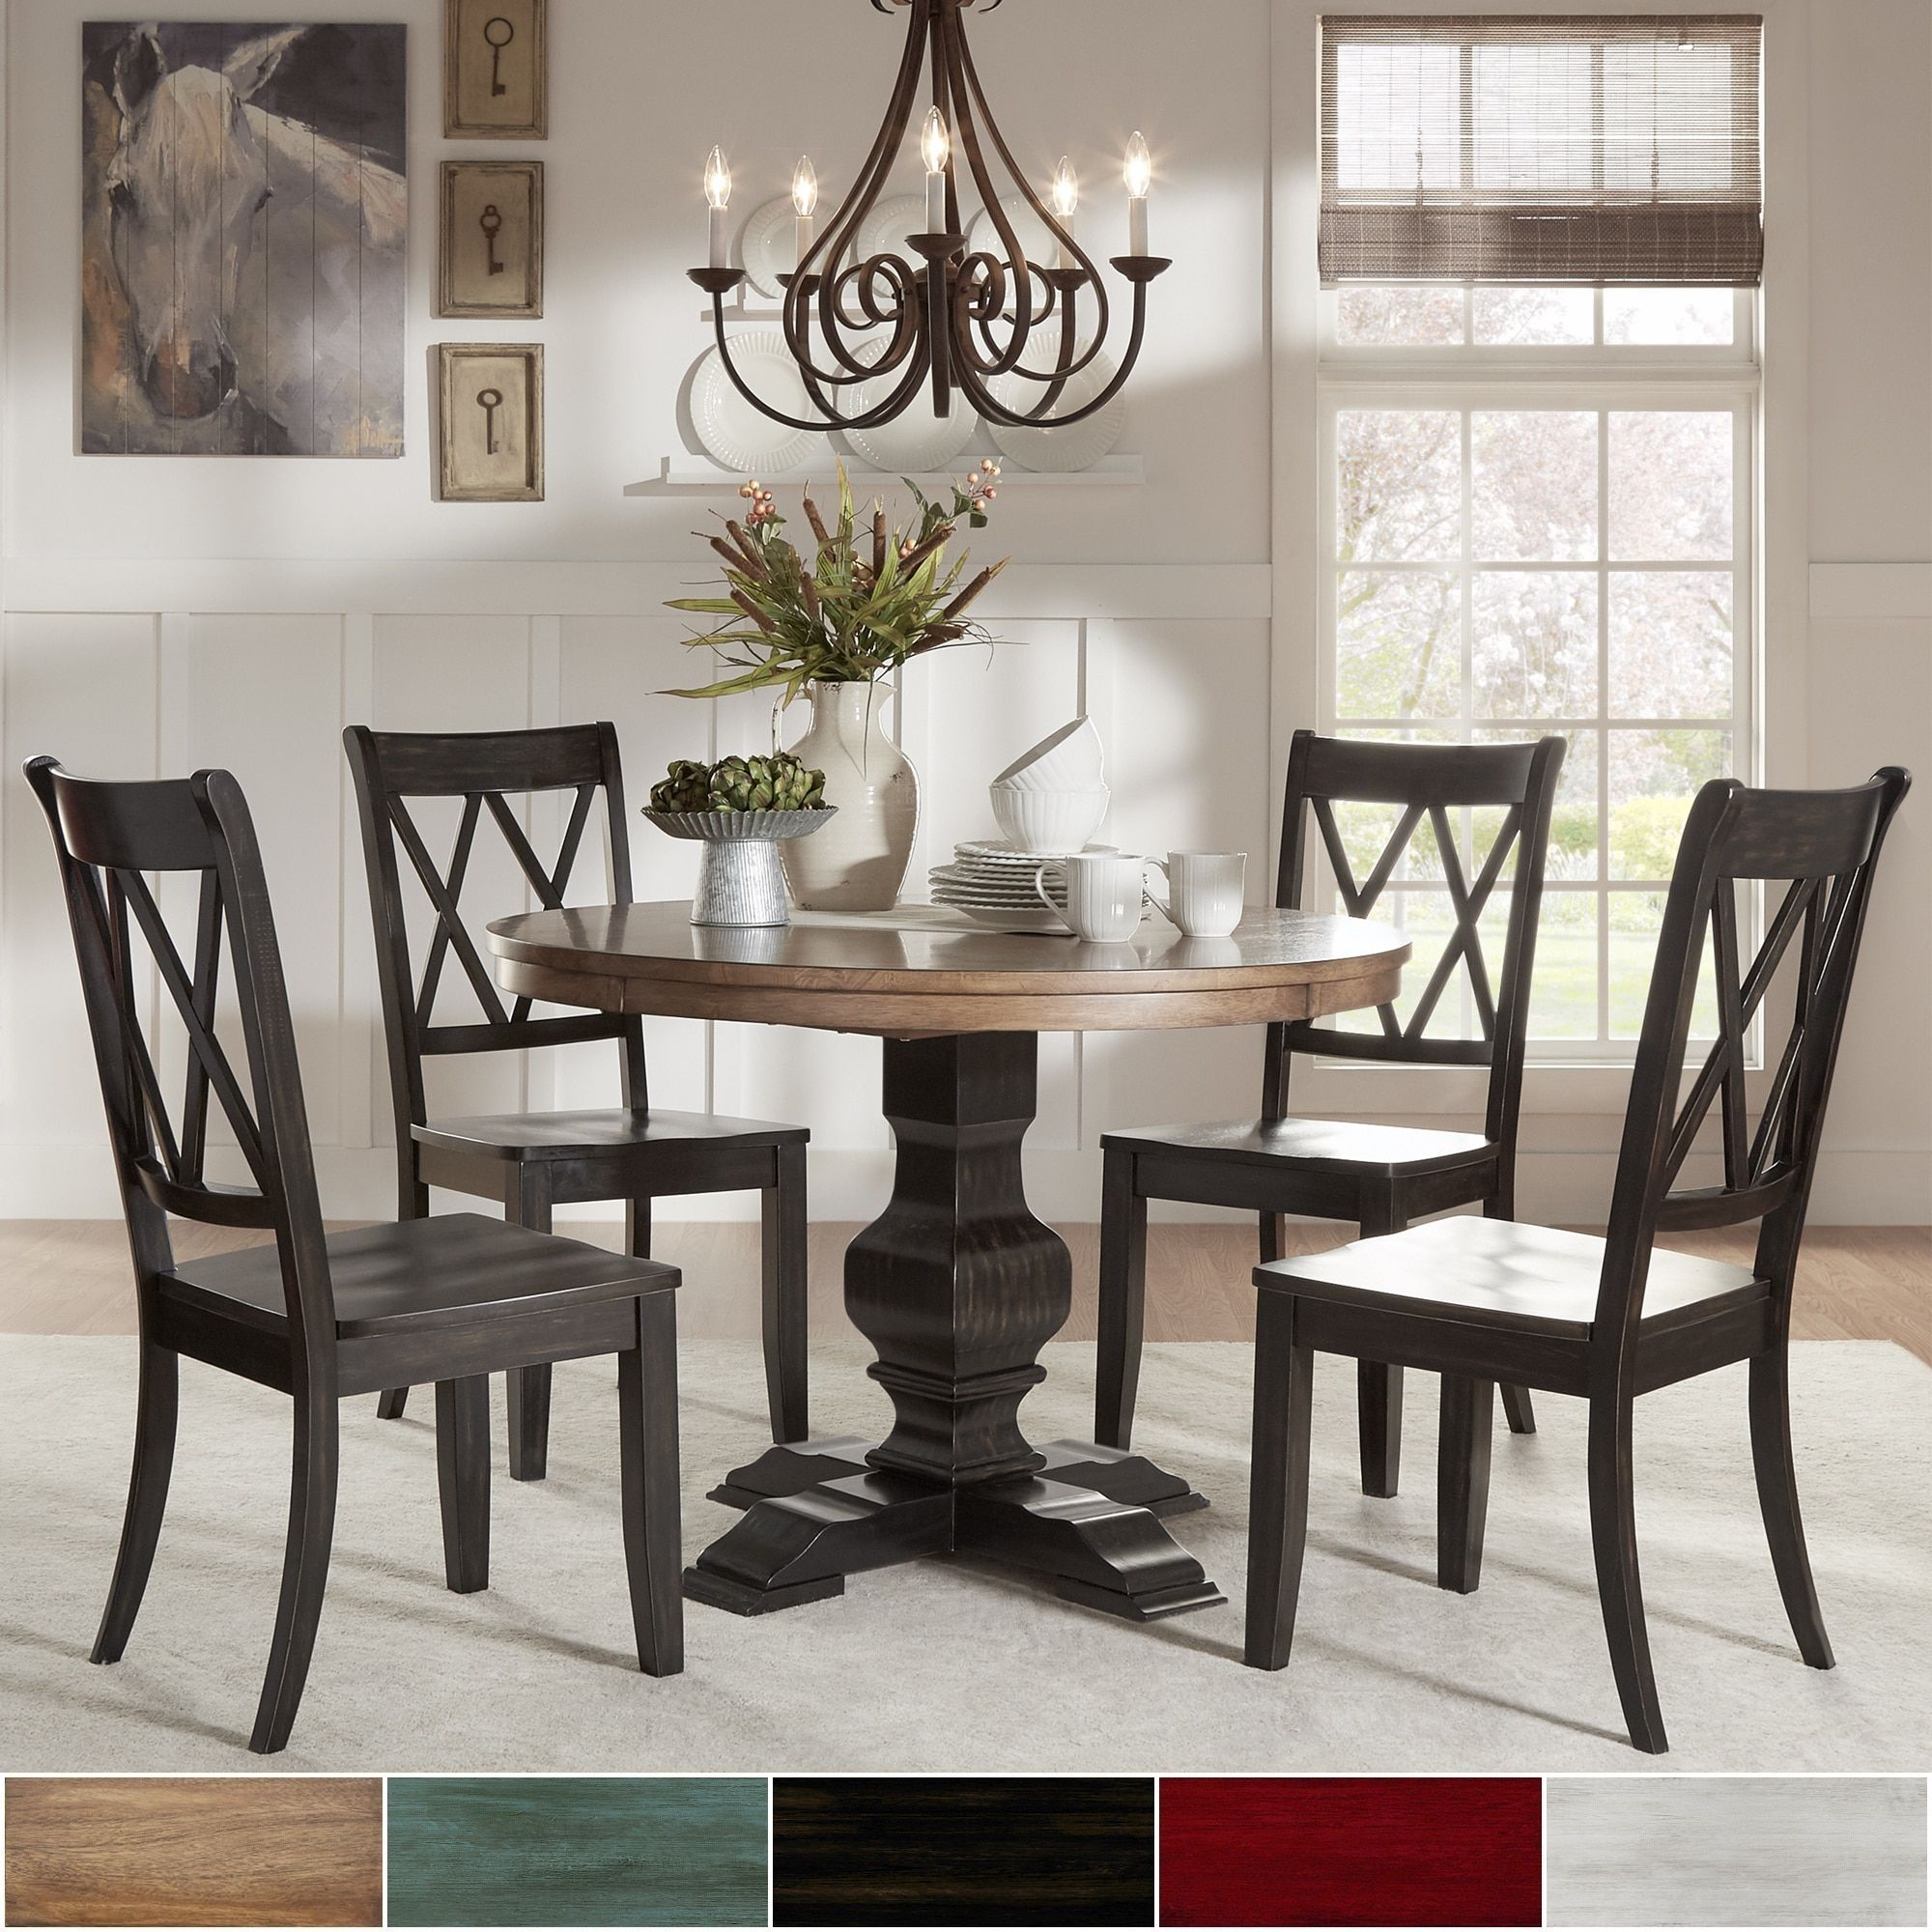 Eleanor Black Round Solid Wood Top 5 Piece Dining Set X Back By